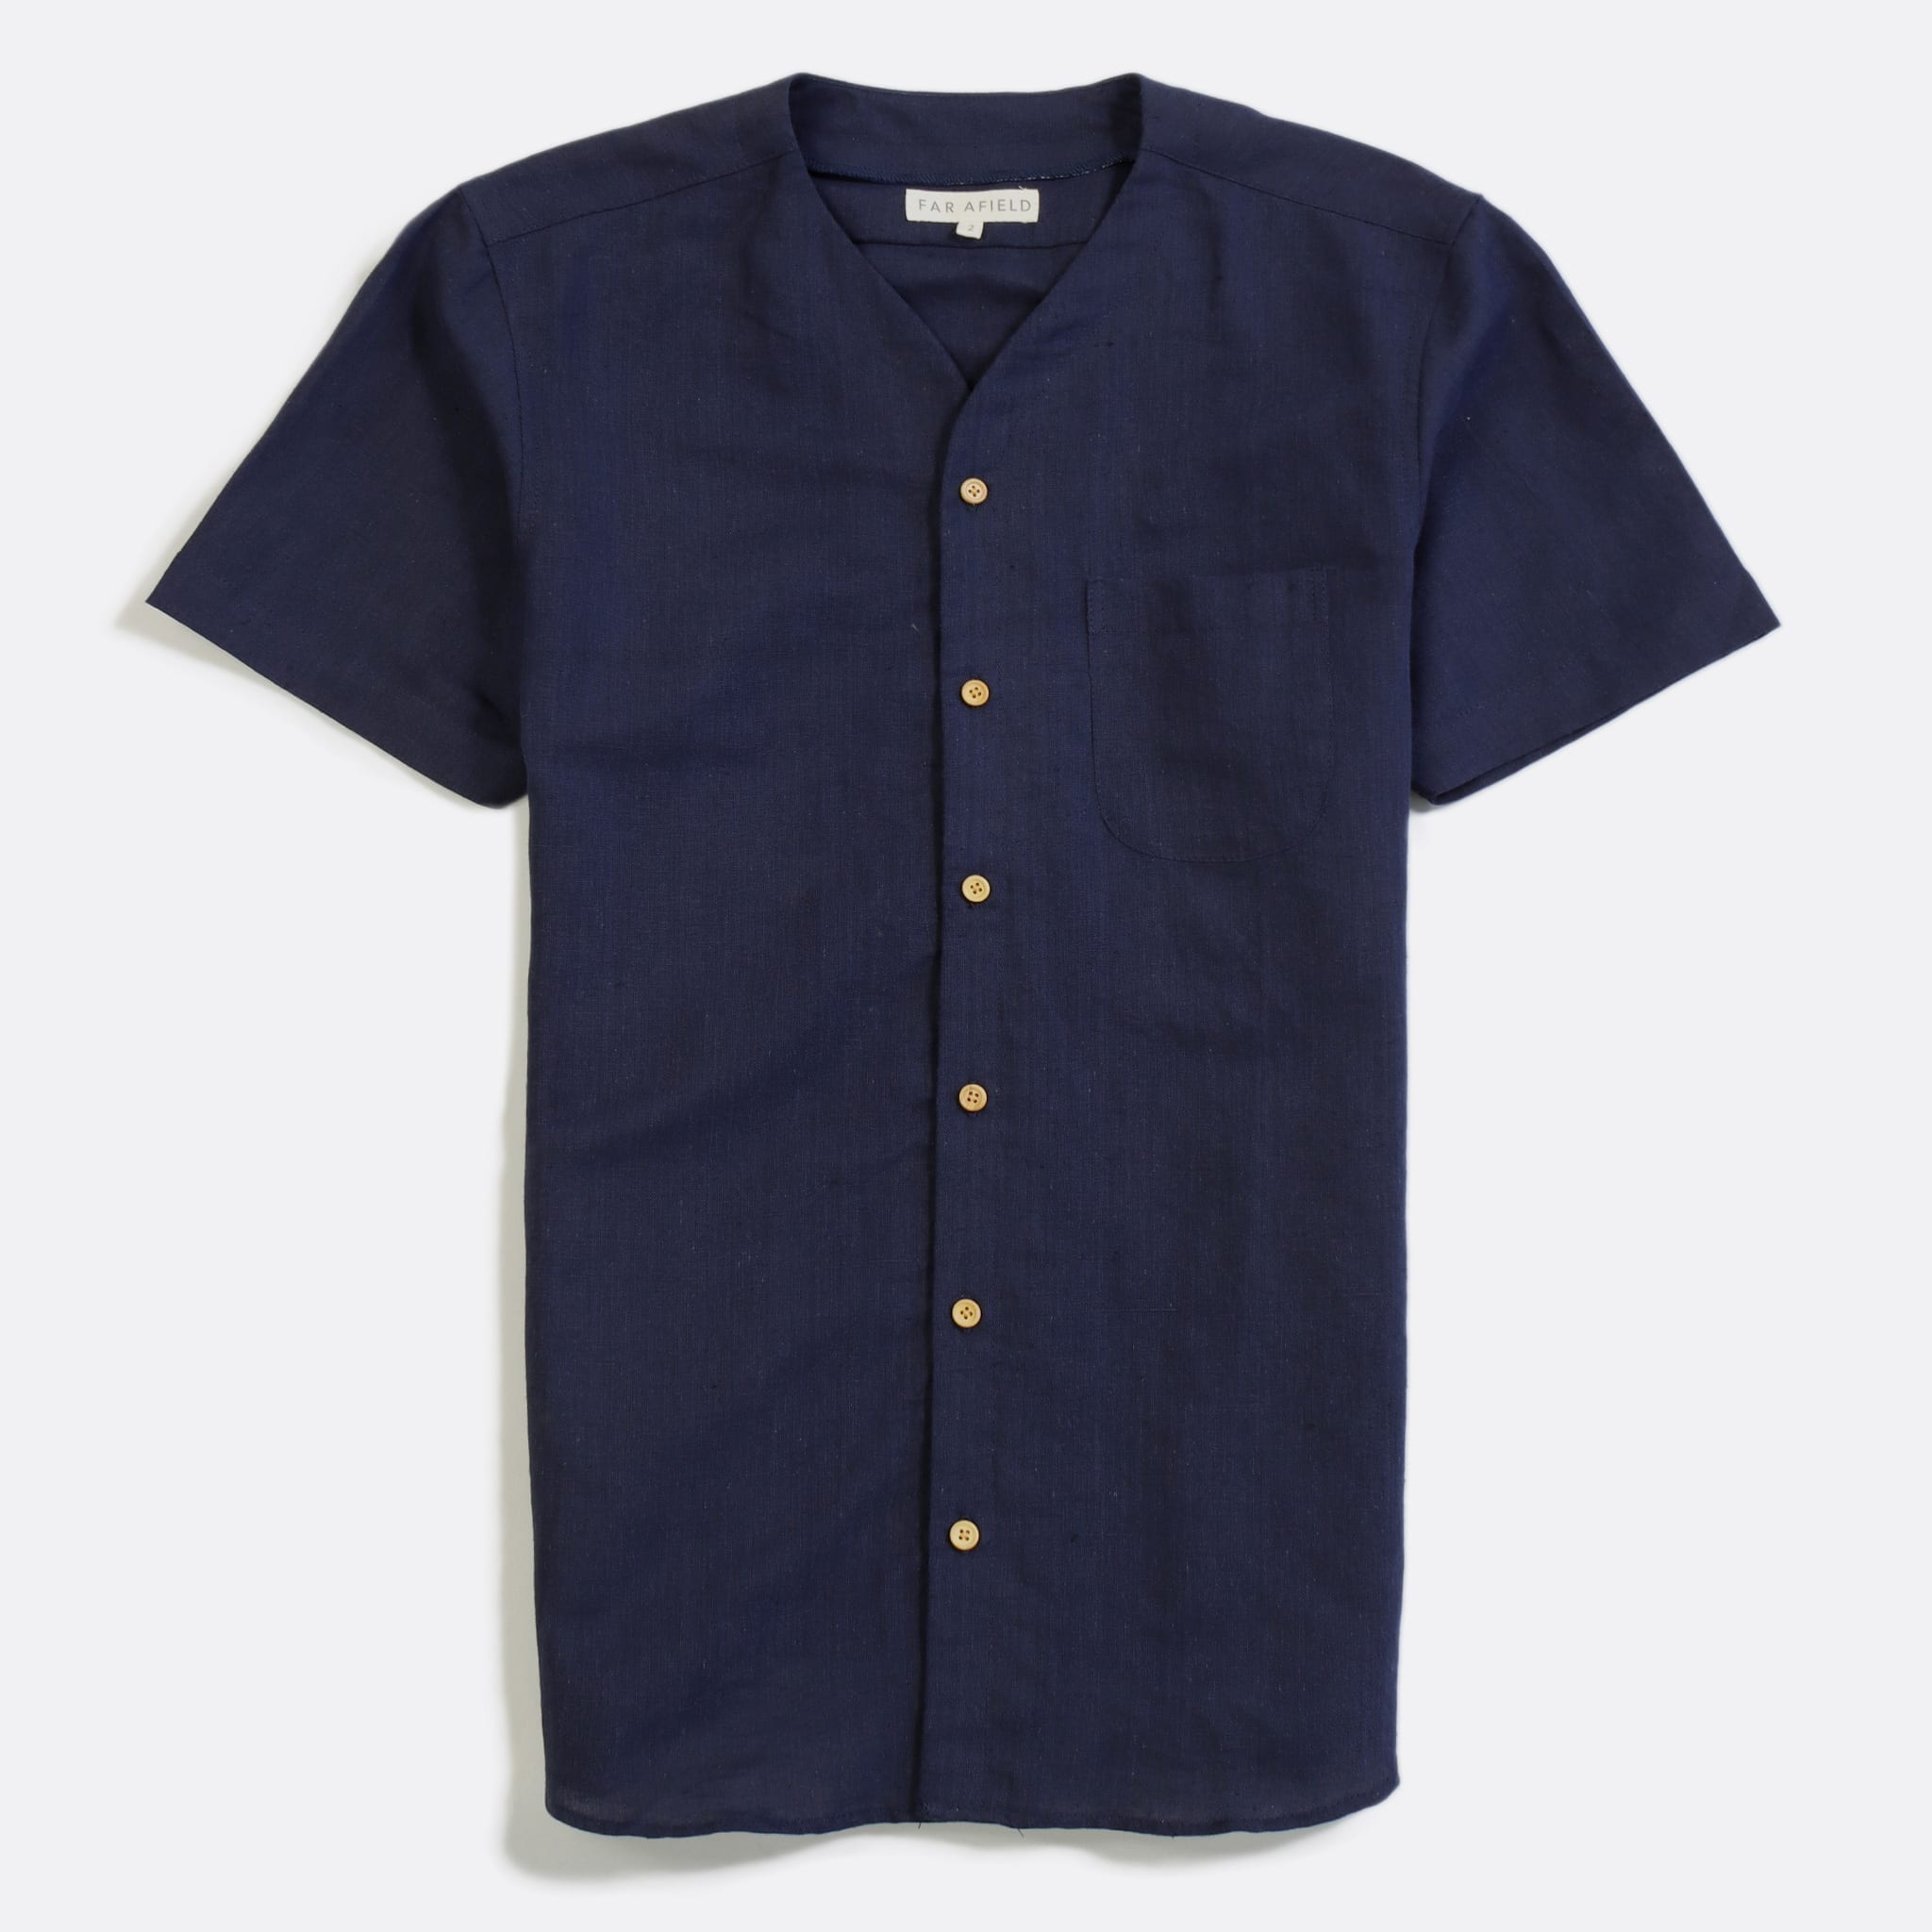 Far Afield Harvey Short Sleeve Shirt a Navy Linen Fabric North American Casual